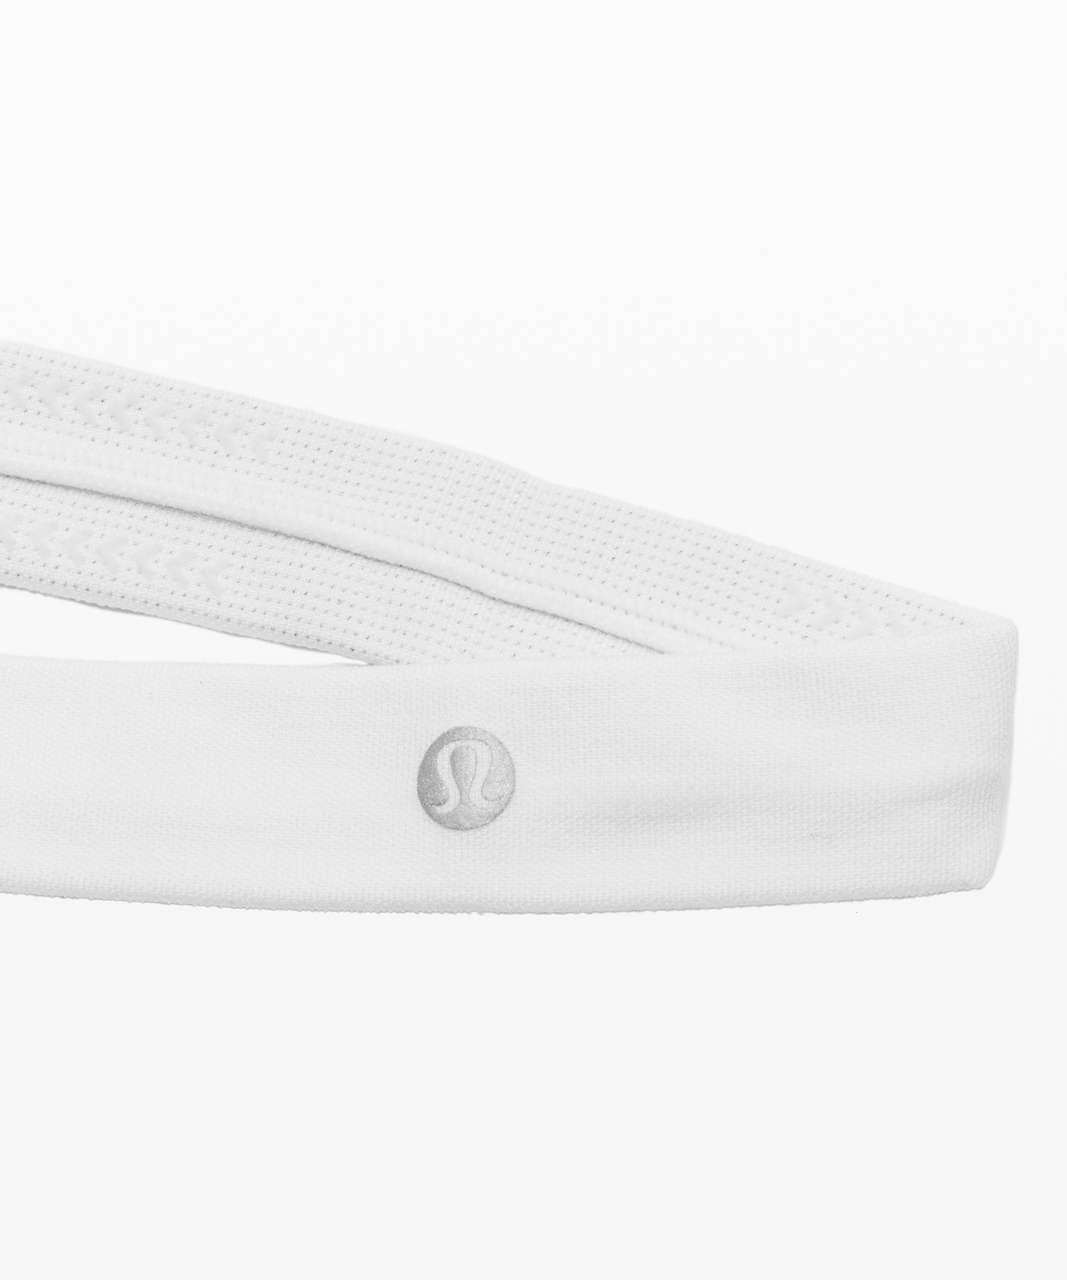 Lululemon Cardio Cross Trainer Headband - White / White (First Release)